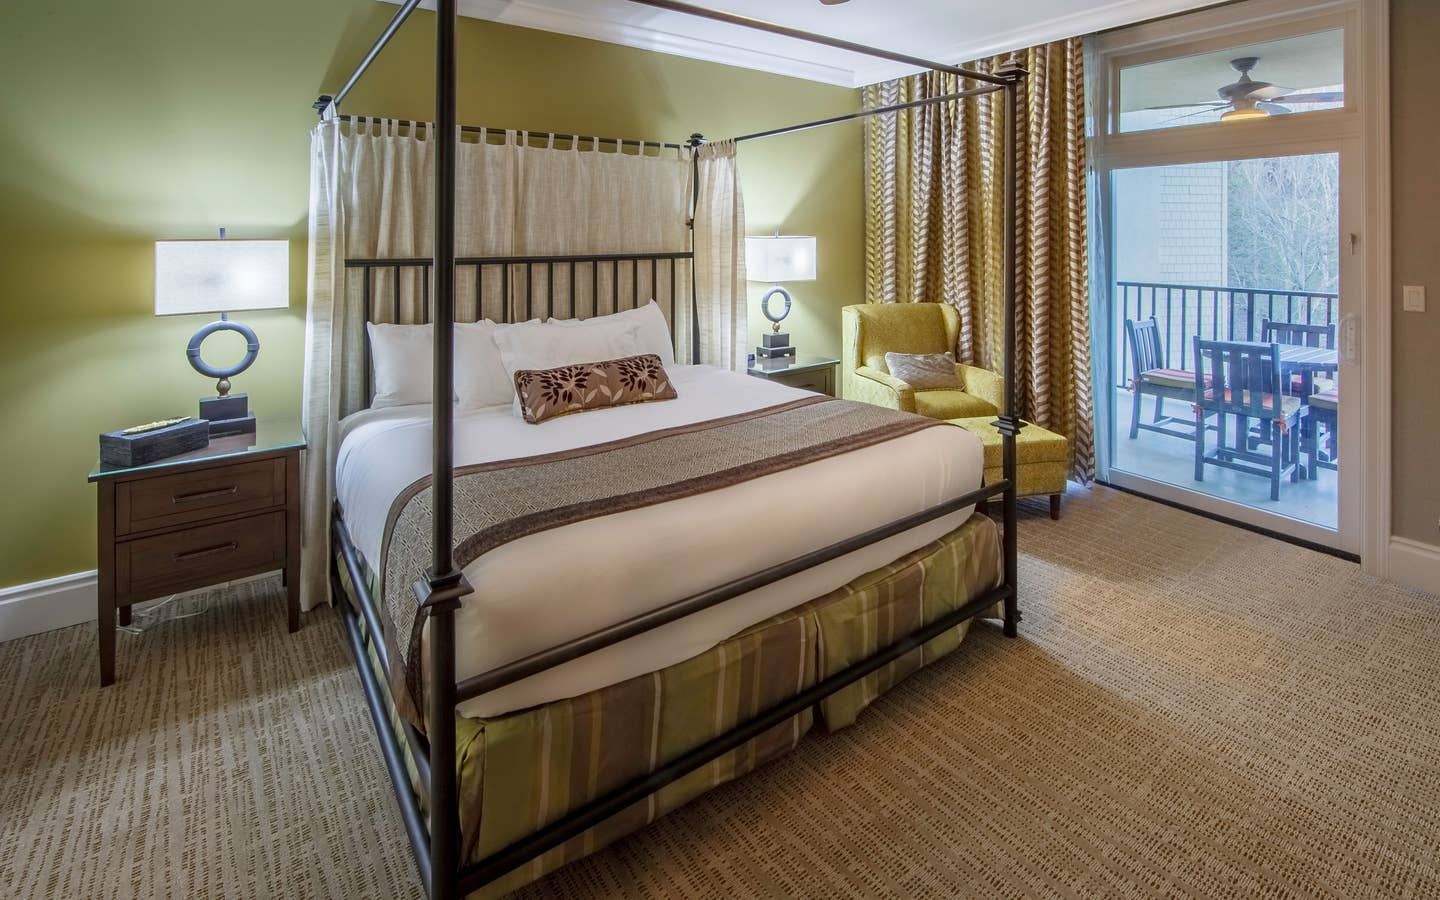 Bedroom with a balcony at Smoky Mountain Resort in Gatlinburg, Tennessee.